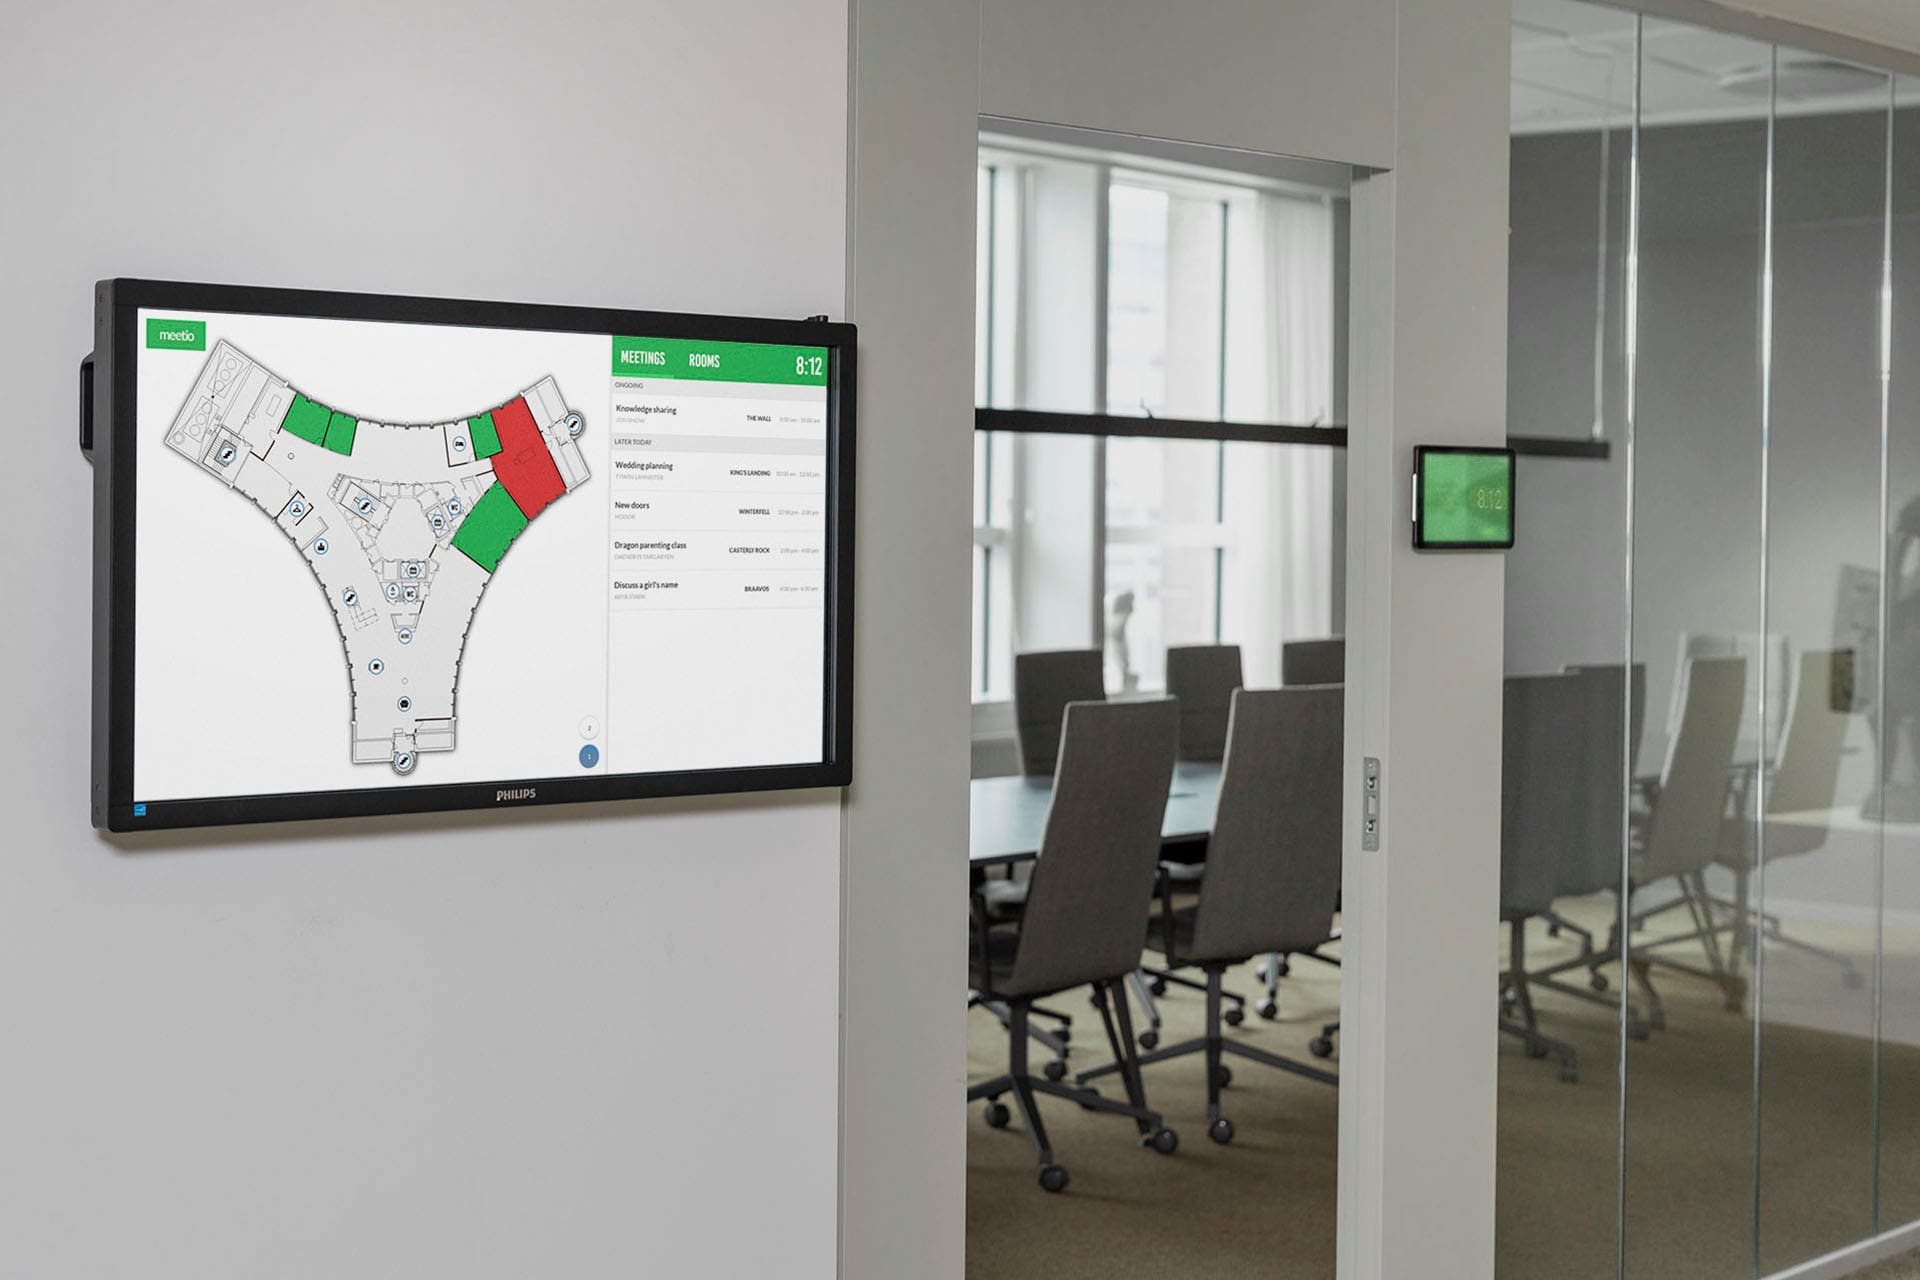 Large touch screen with Meetio View map outside a meeting room